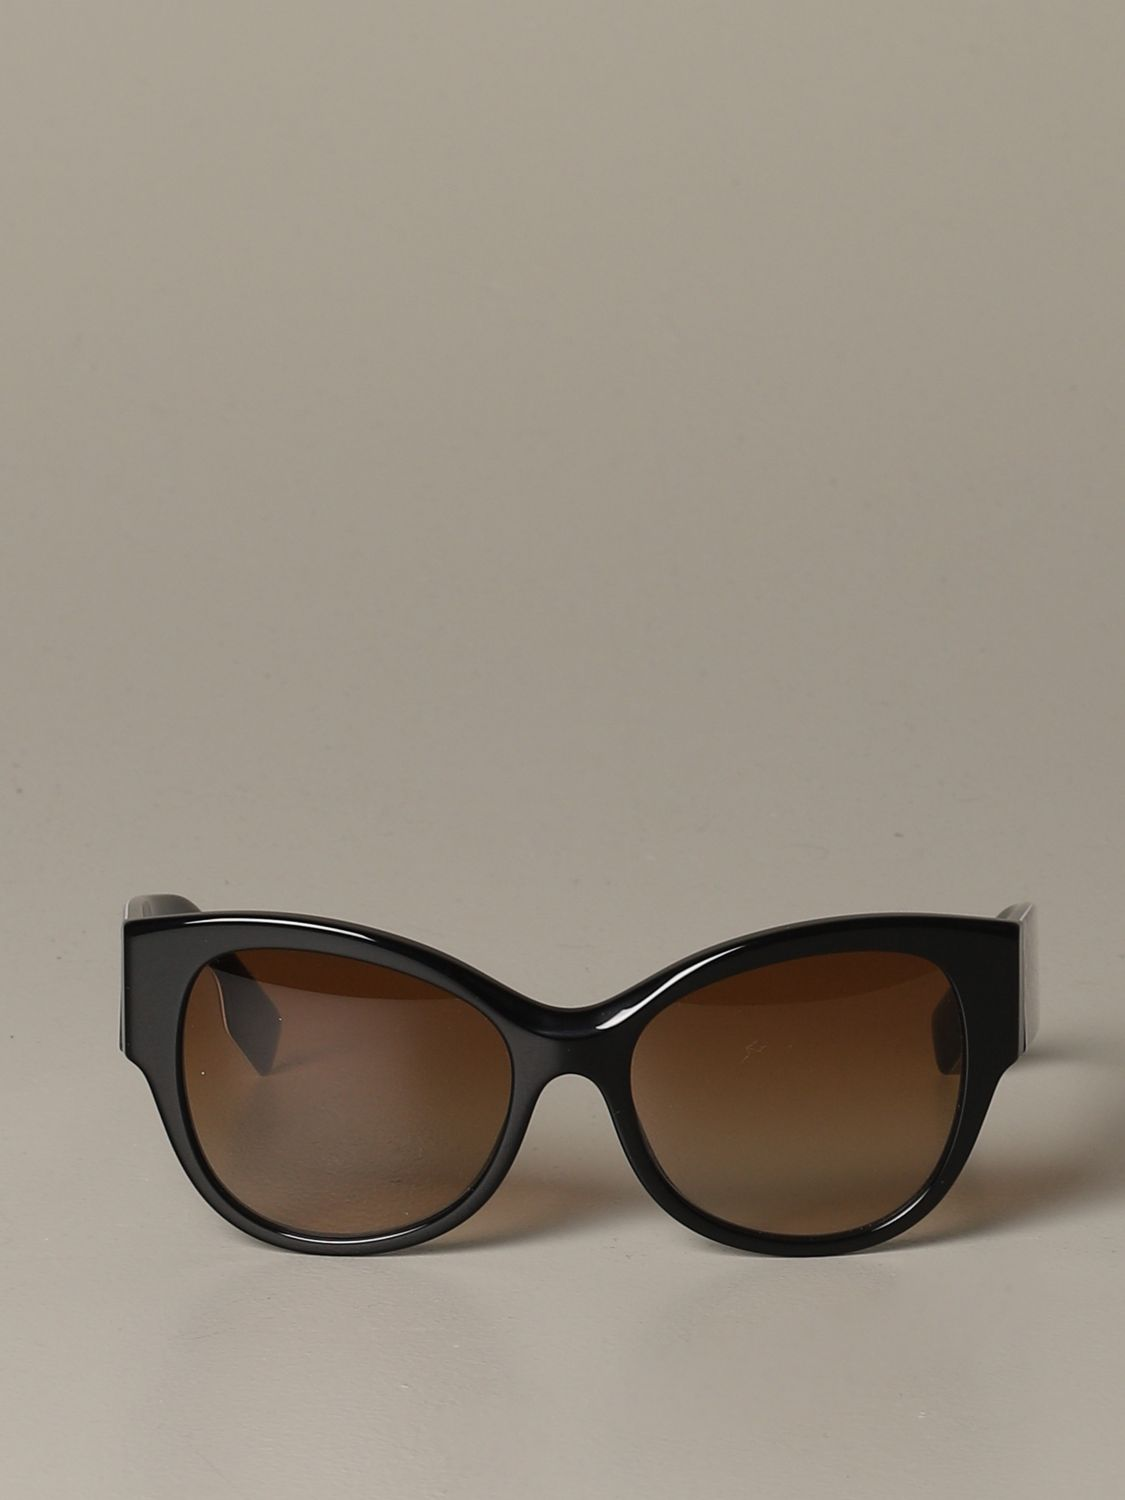 Glasses Burberry: Glasses women Burberry black 2